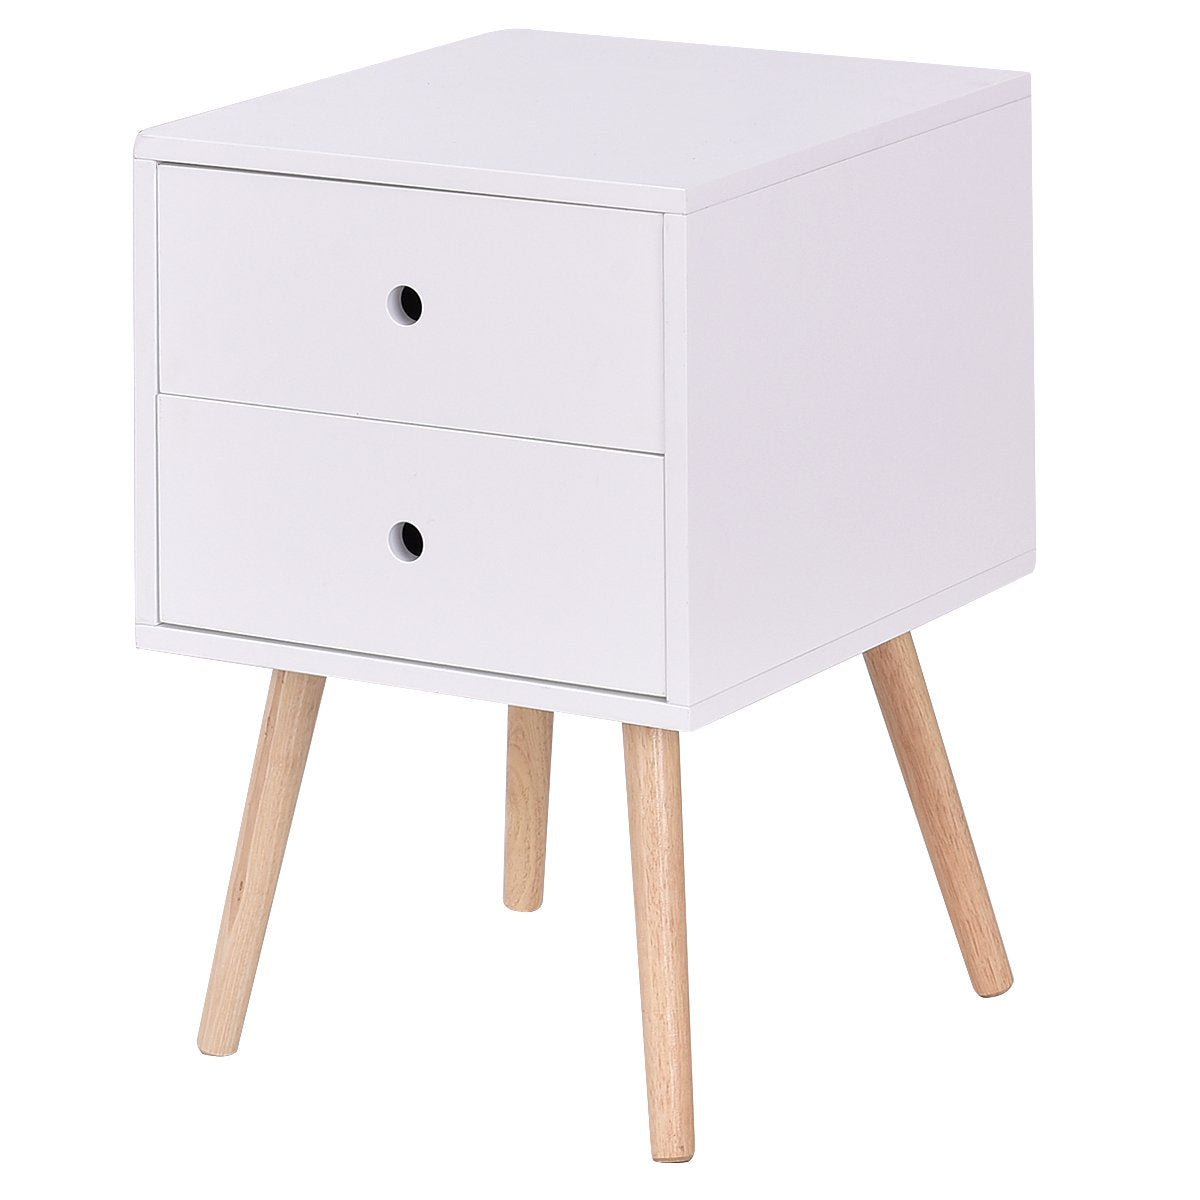 Giantex Side End Table W/2 Drawers Mid-Century Accent for Bedroom Living Storage Home Furniture Nightstand (1)